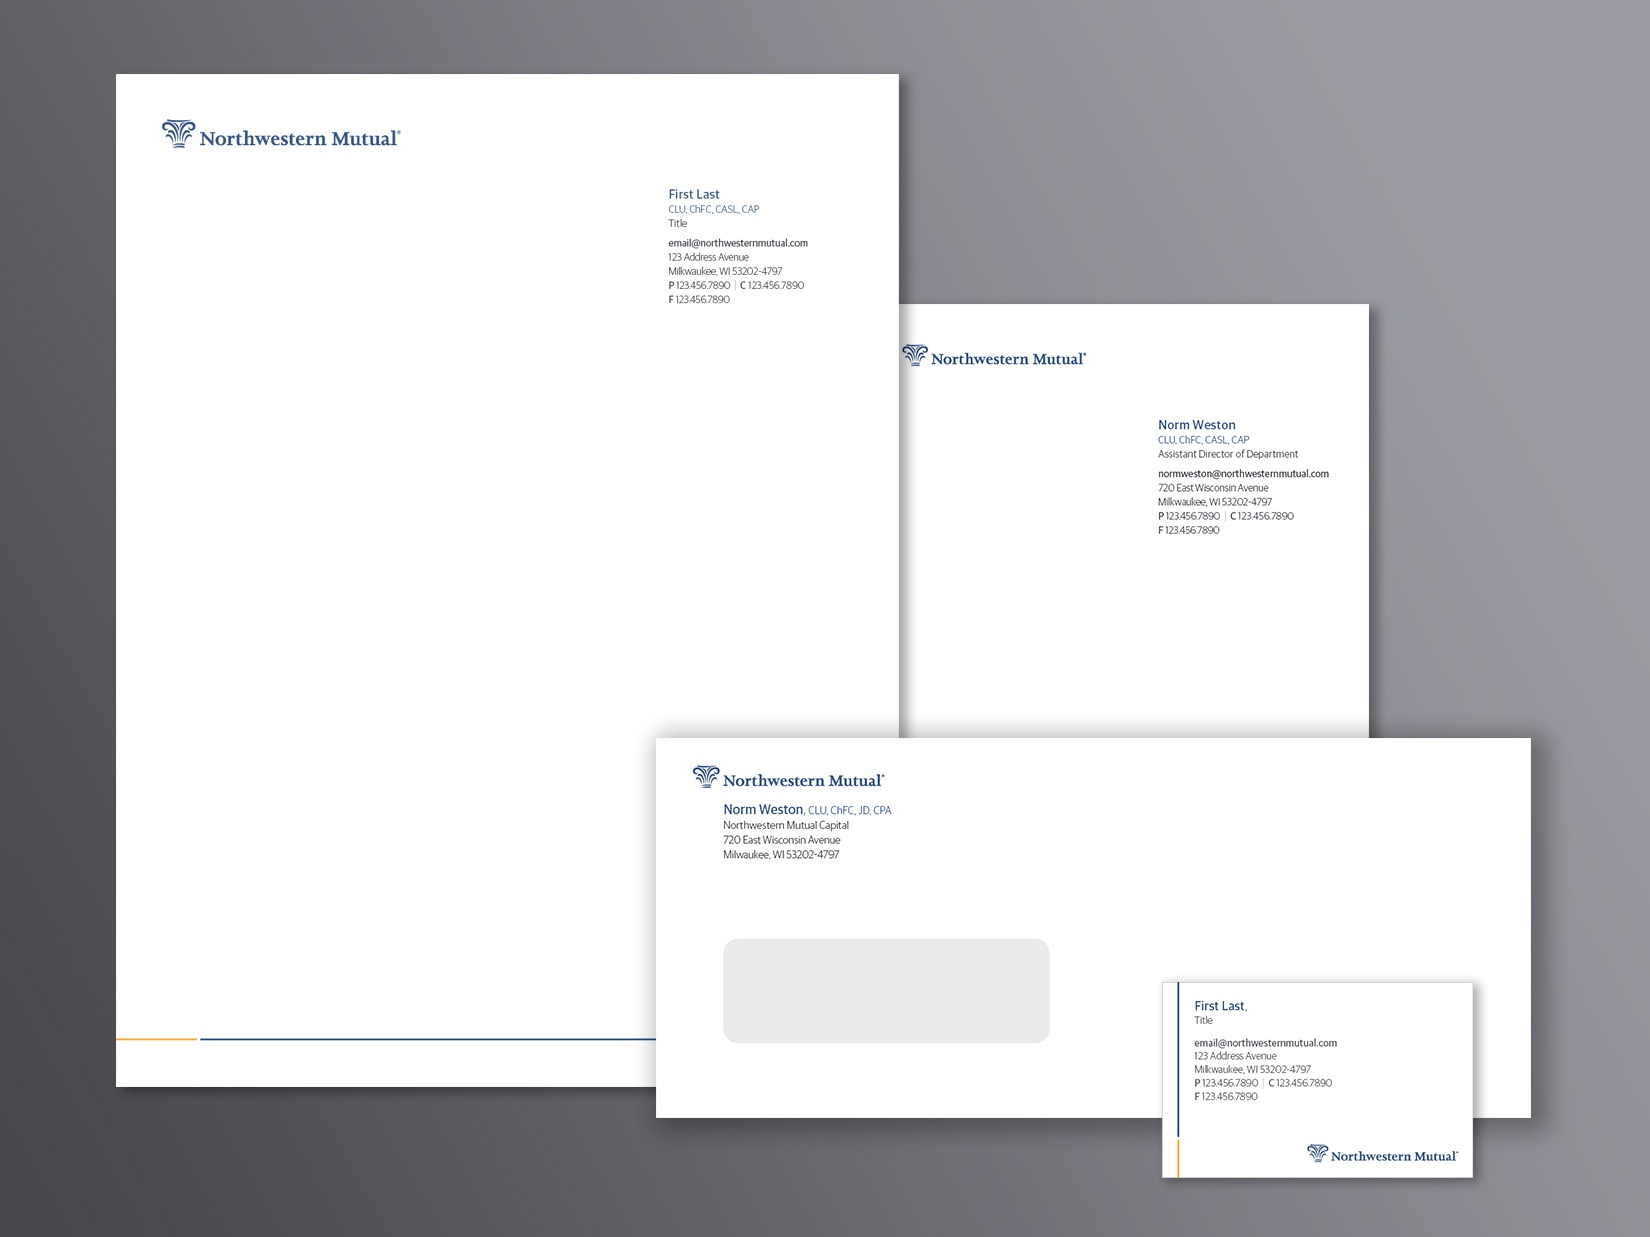 Northwestern Mutual Stationery: Letterhead, business card, memo pad and letter